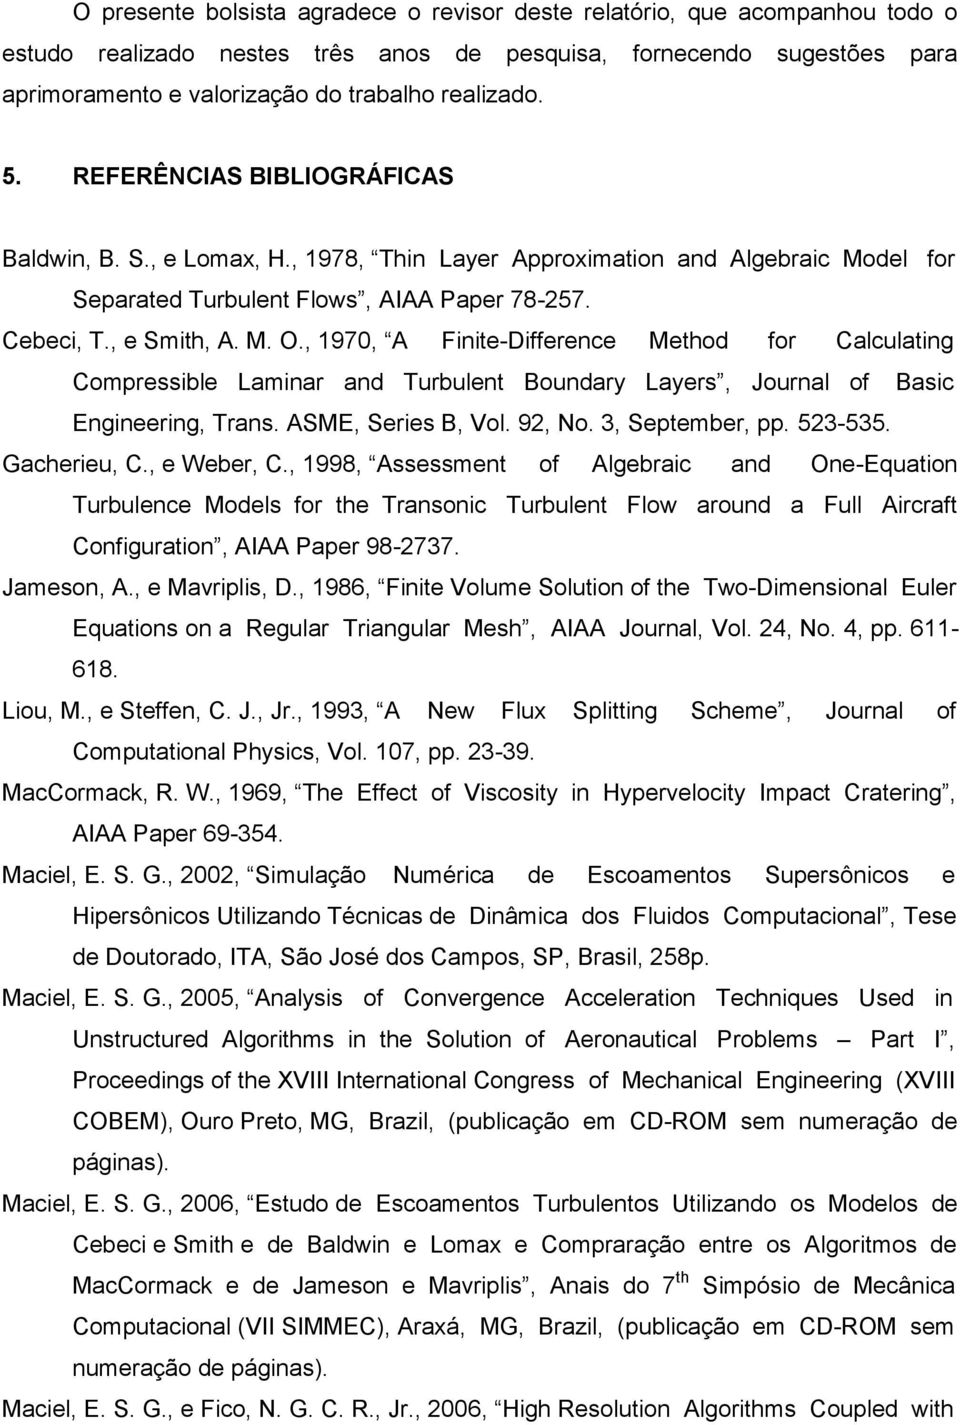 , 1970, A Finite-Difference Method for Calculating Compressible Laminar and Turbulent Boundary Layers, Journal of Basic Engineering, Trans. ASME, Series B, Vol. 92, No. 3, September, pp. 523-535.